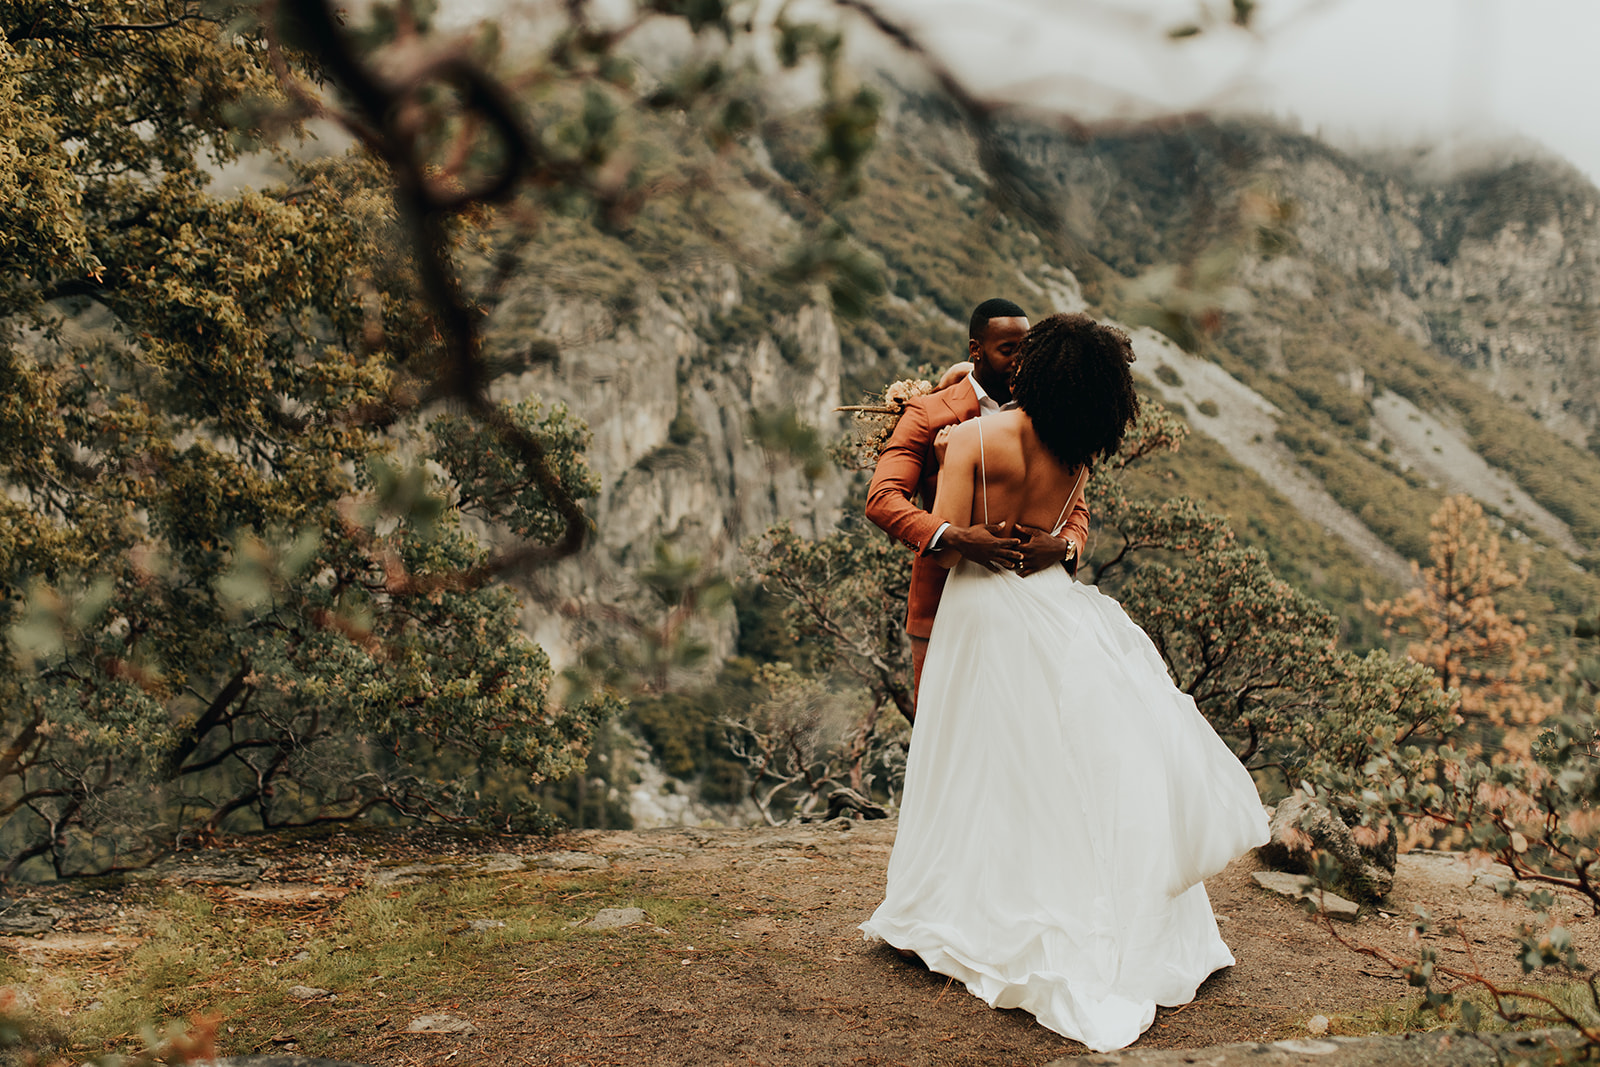 Yosemite_Elopement_Hannah_Alena_Photo_Portland_Wedding_Photographer-88.jpg